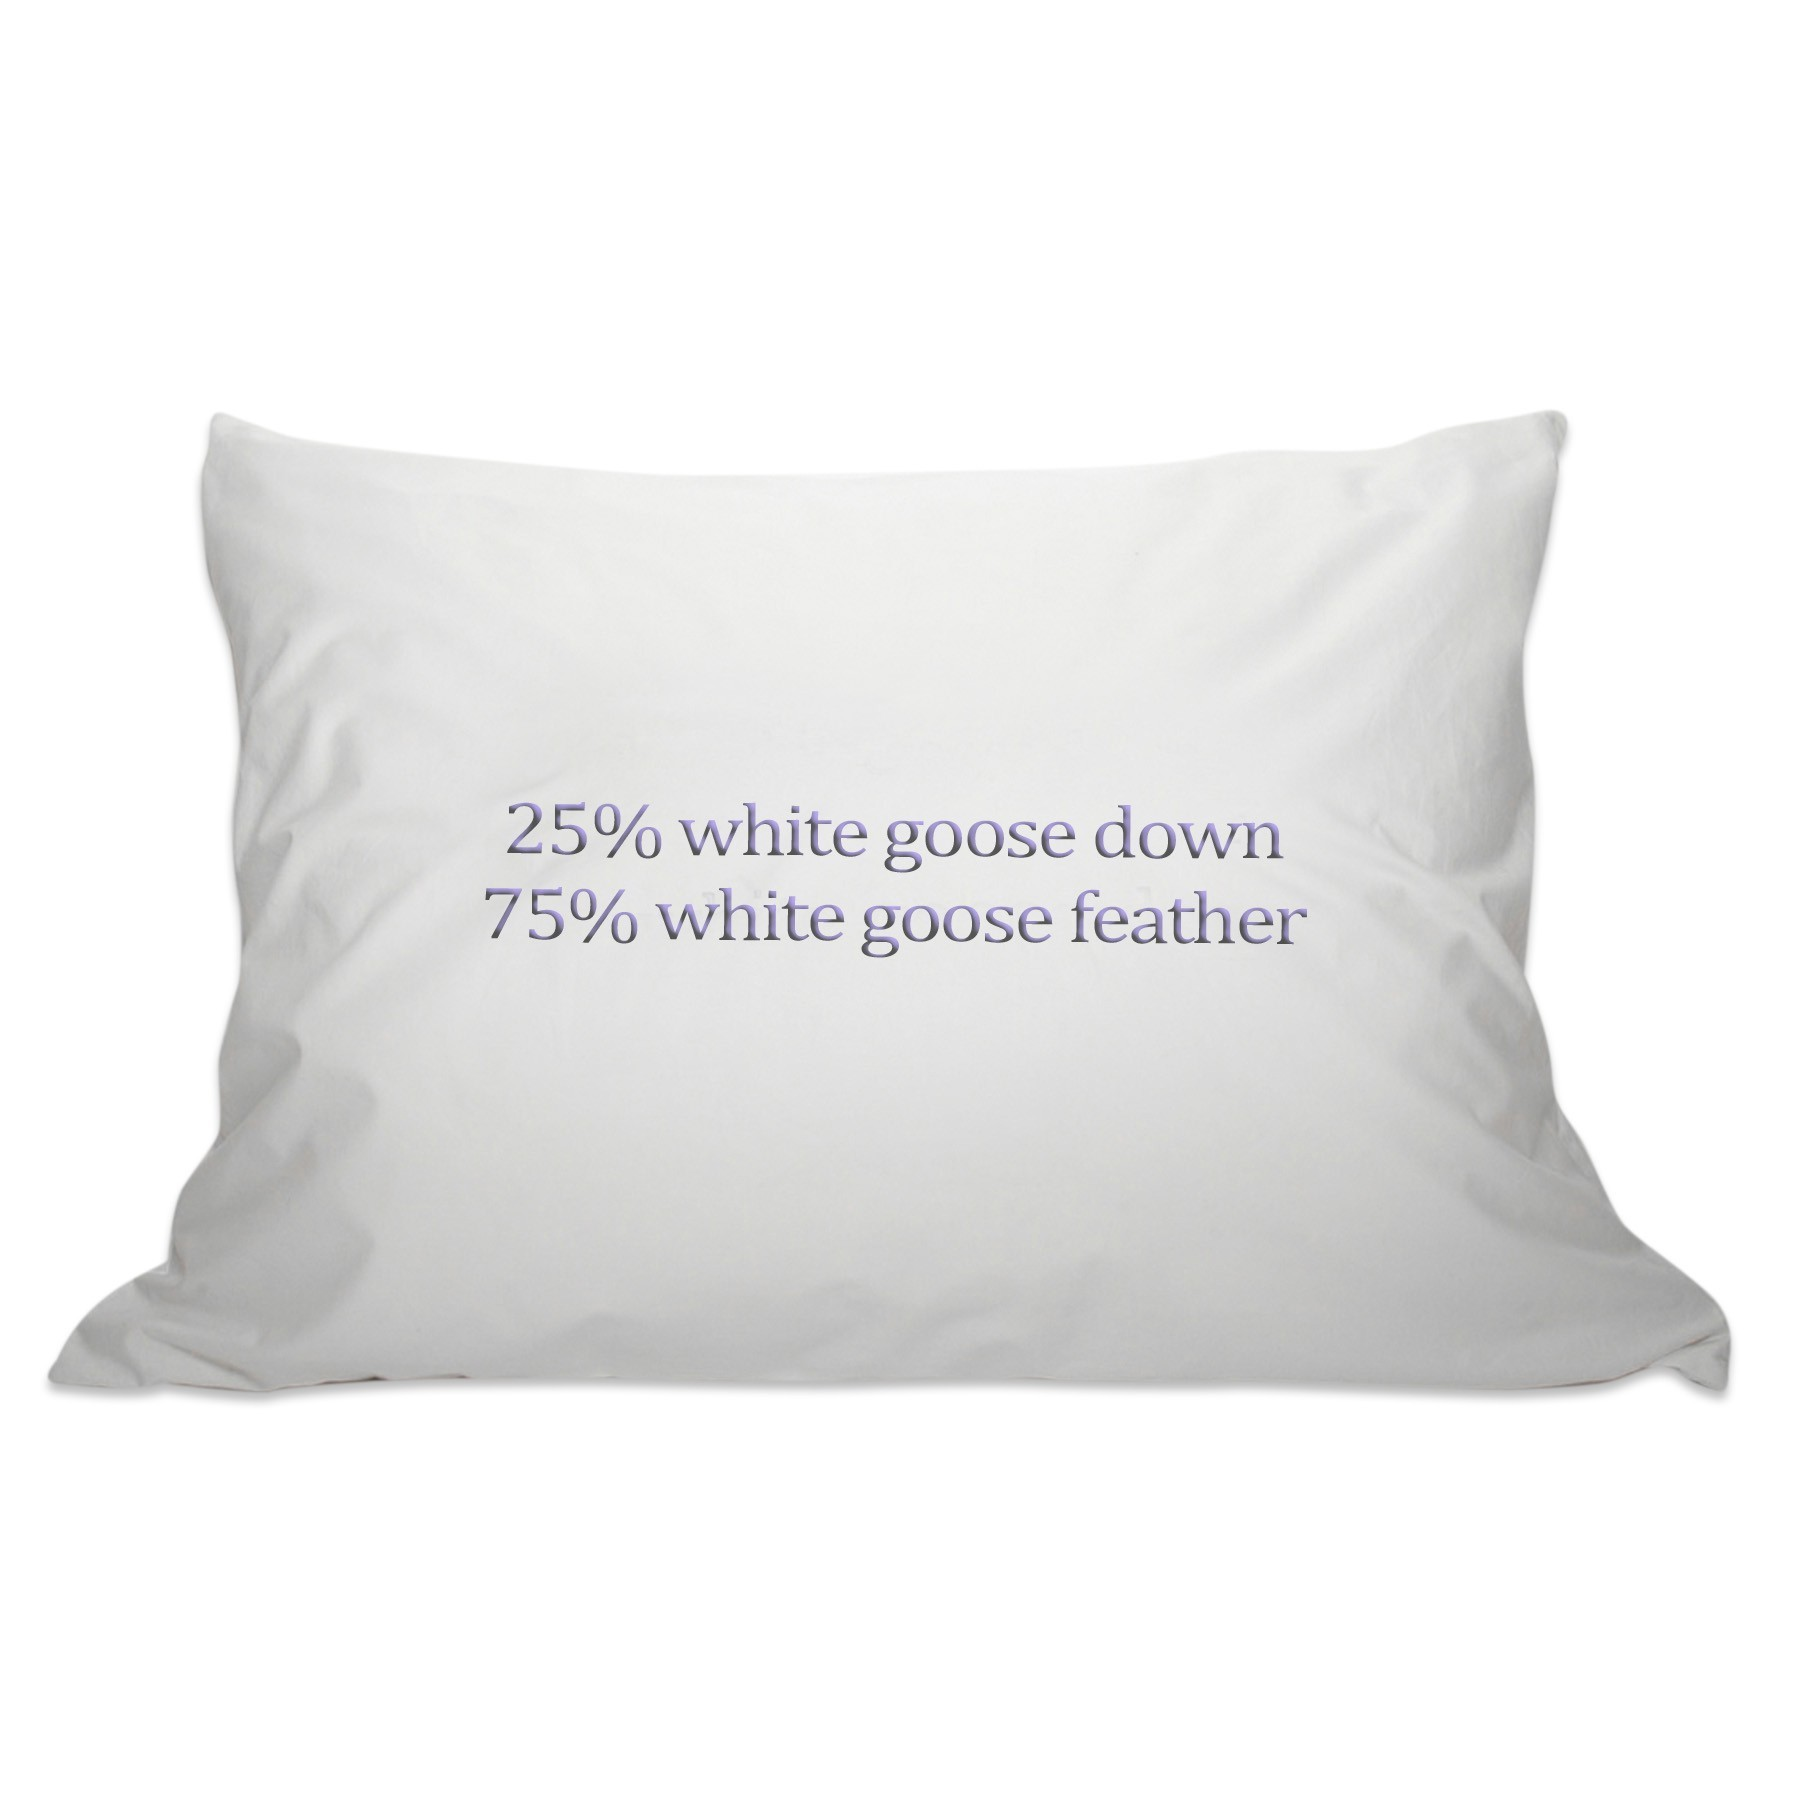 Goose Feather Pillows Animal Welfare : Down Pillow - 25/75 Goose Down and Feather Pillow - goose down pillow, feather pillow, feather ...